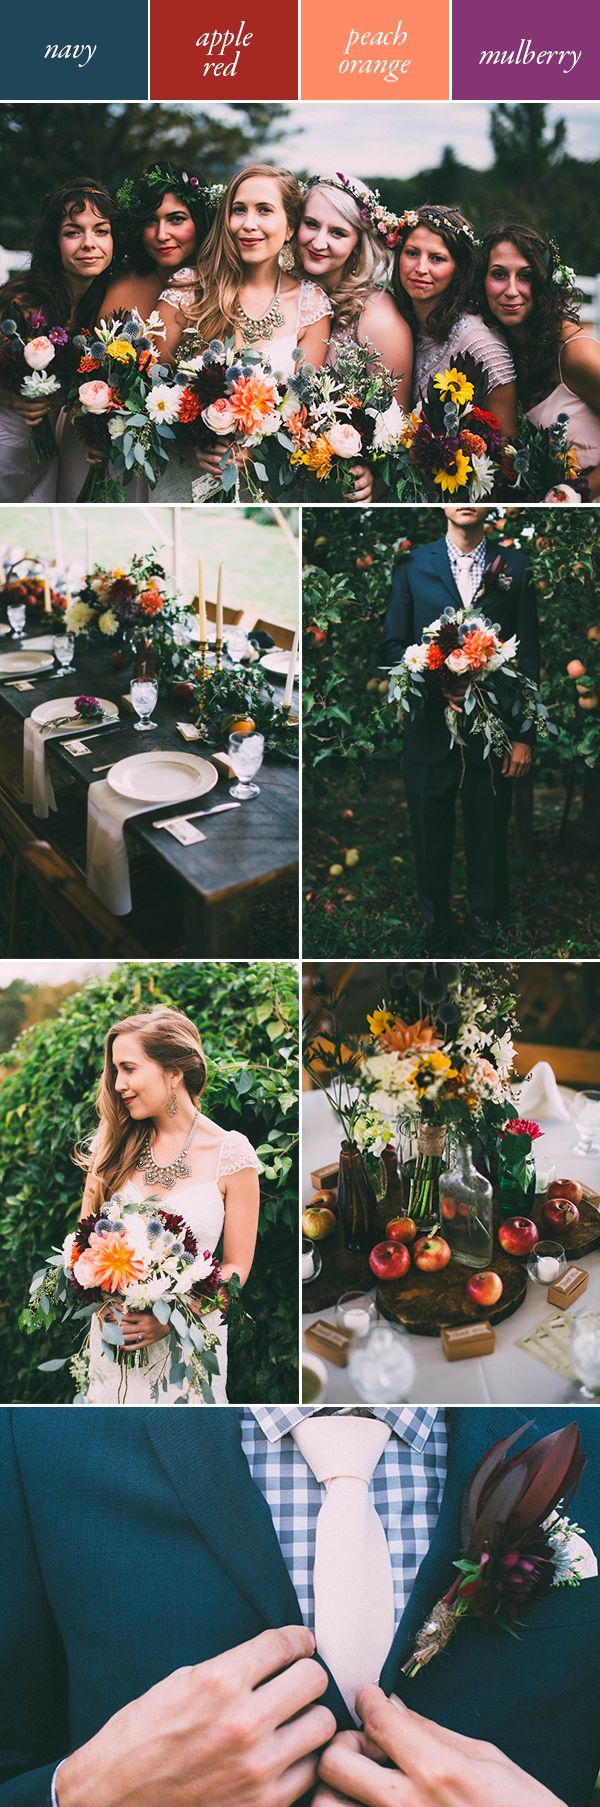 Looking for a vibrant, yet soulful color palette? A navy, red orange, and purple combination works wonders | Image by Chelsea Diane Photography